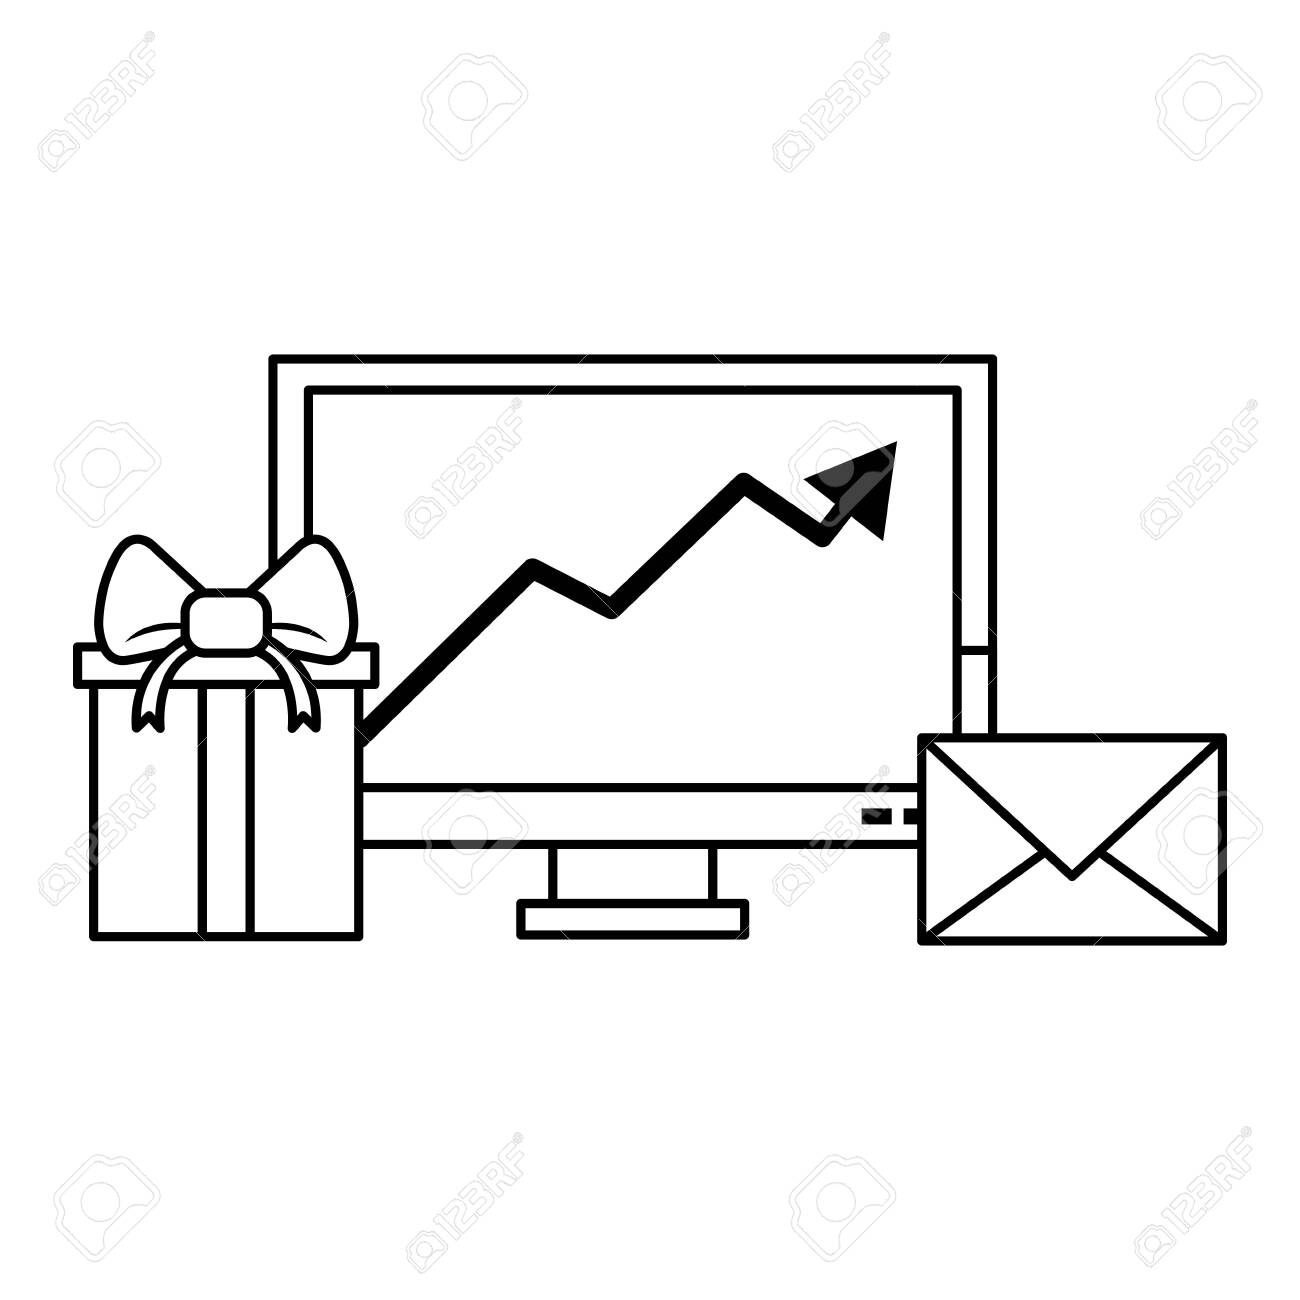 Gift delivery business tendency data logistic communication correspondance graph vector illustration graphic desing - 122897614